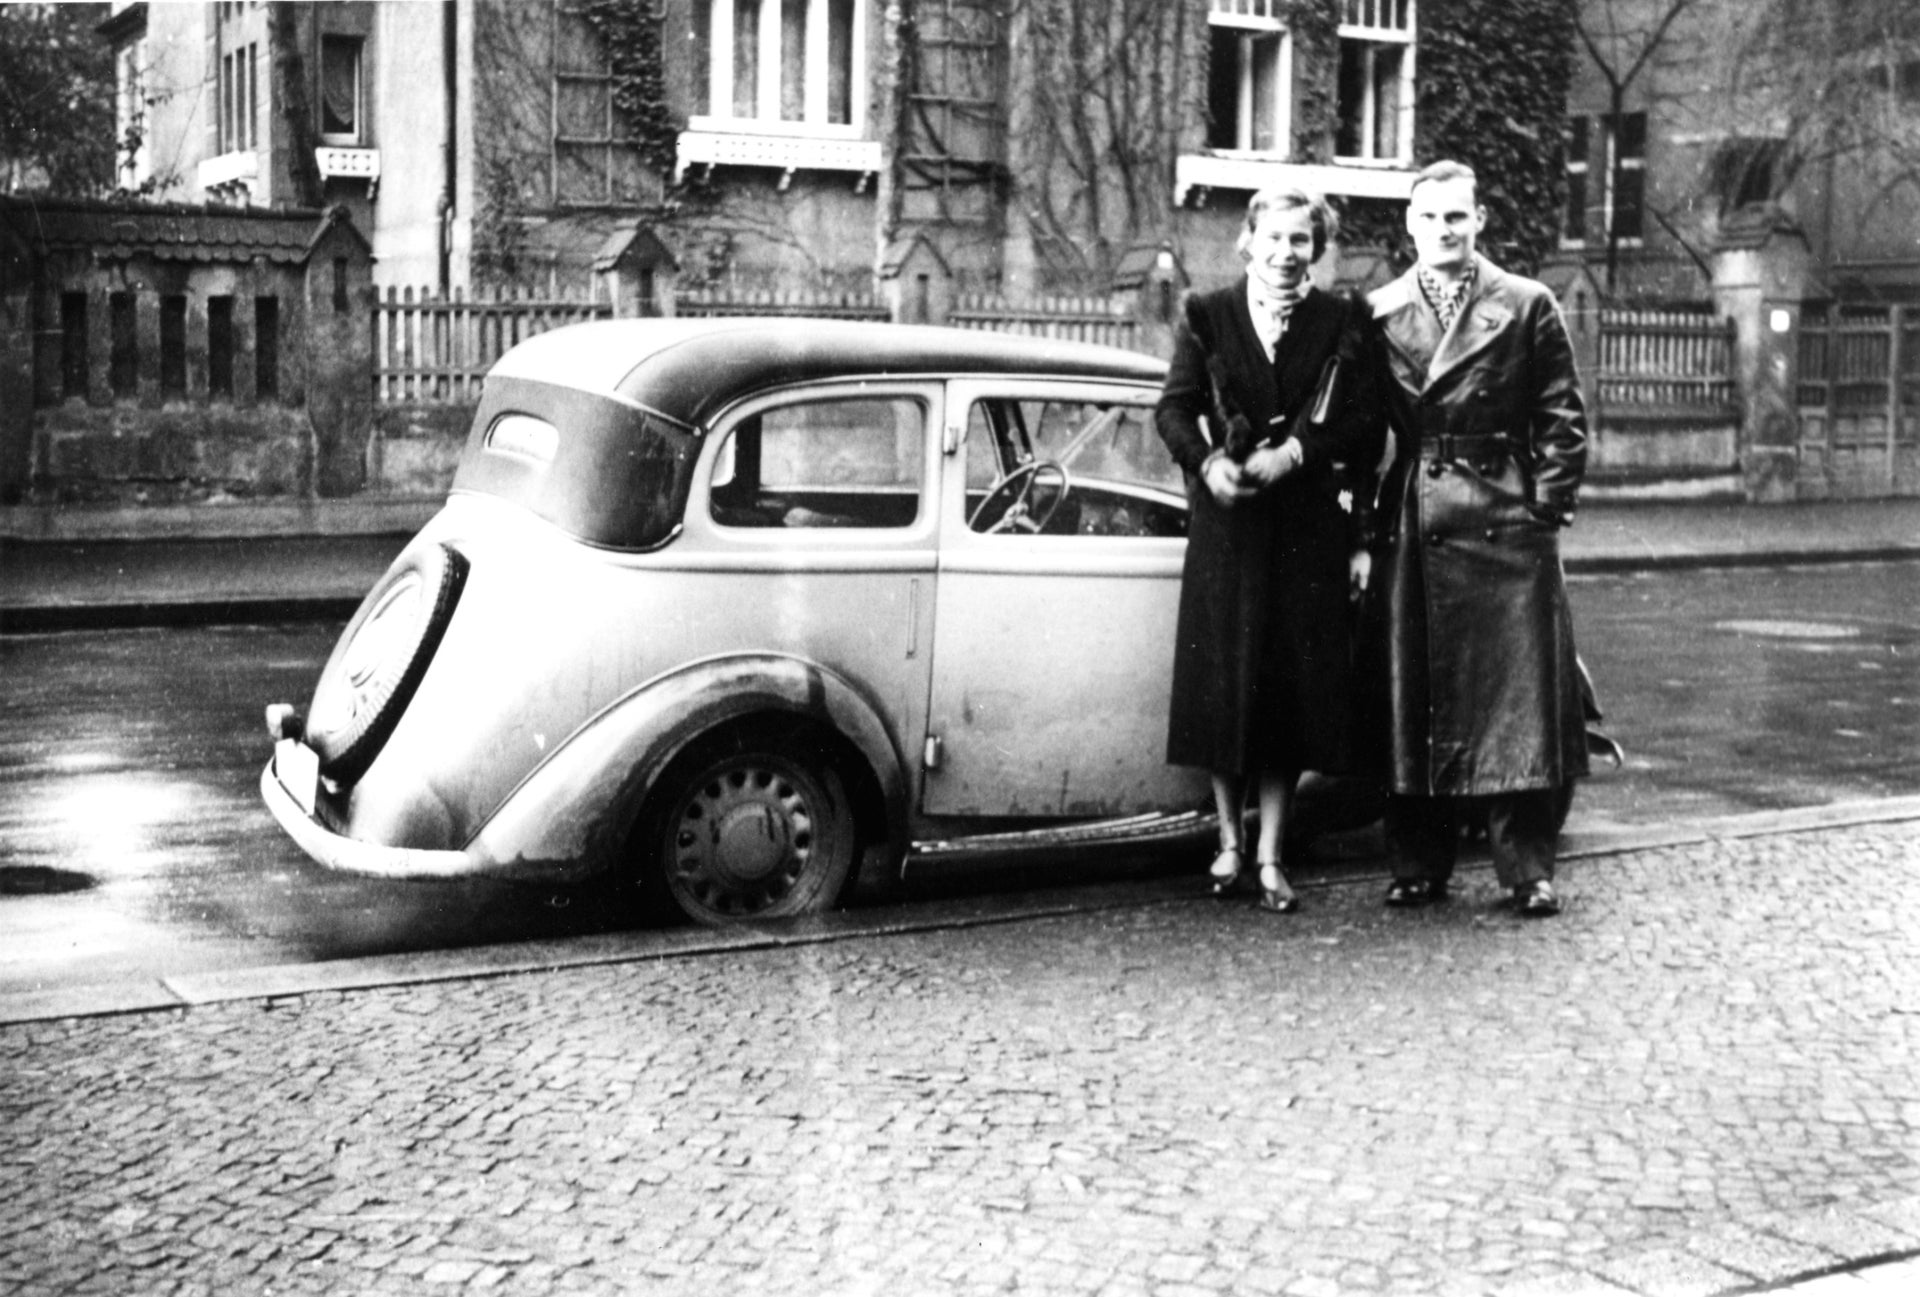 """Harro and Libertas with """"Caesar,"""" their light blue 24 horsepower Fiat convertible. They drove the car to Italy in the fall of 1938, arriving back in Berlin just before Kristallnacht began."""